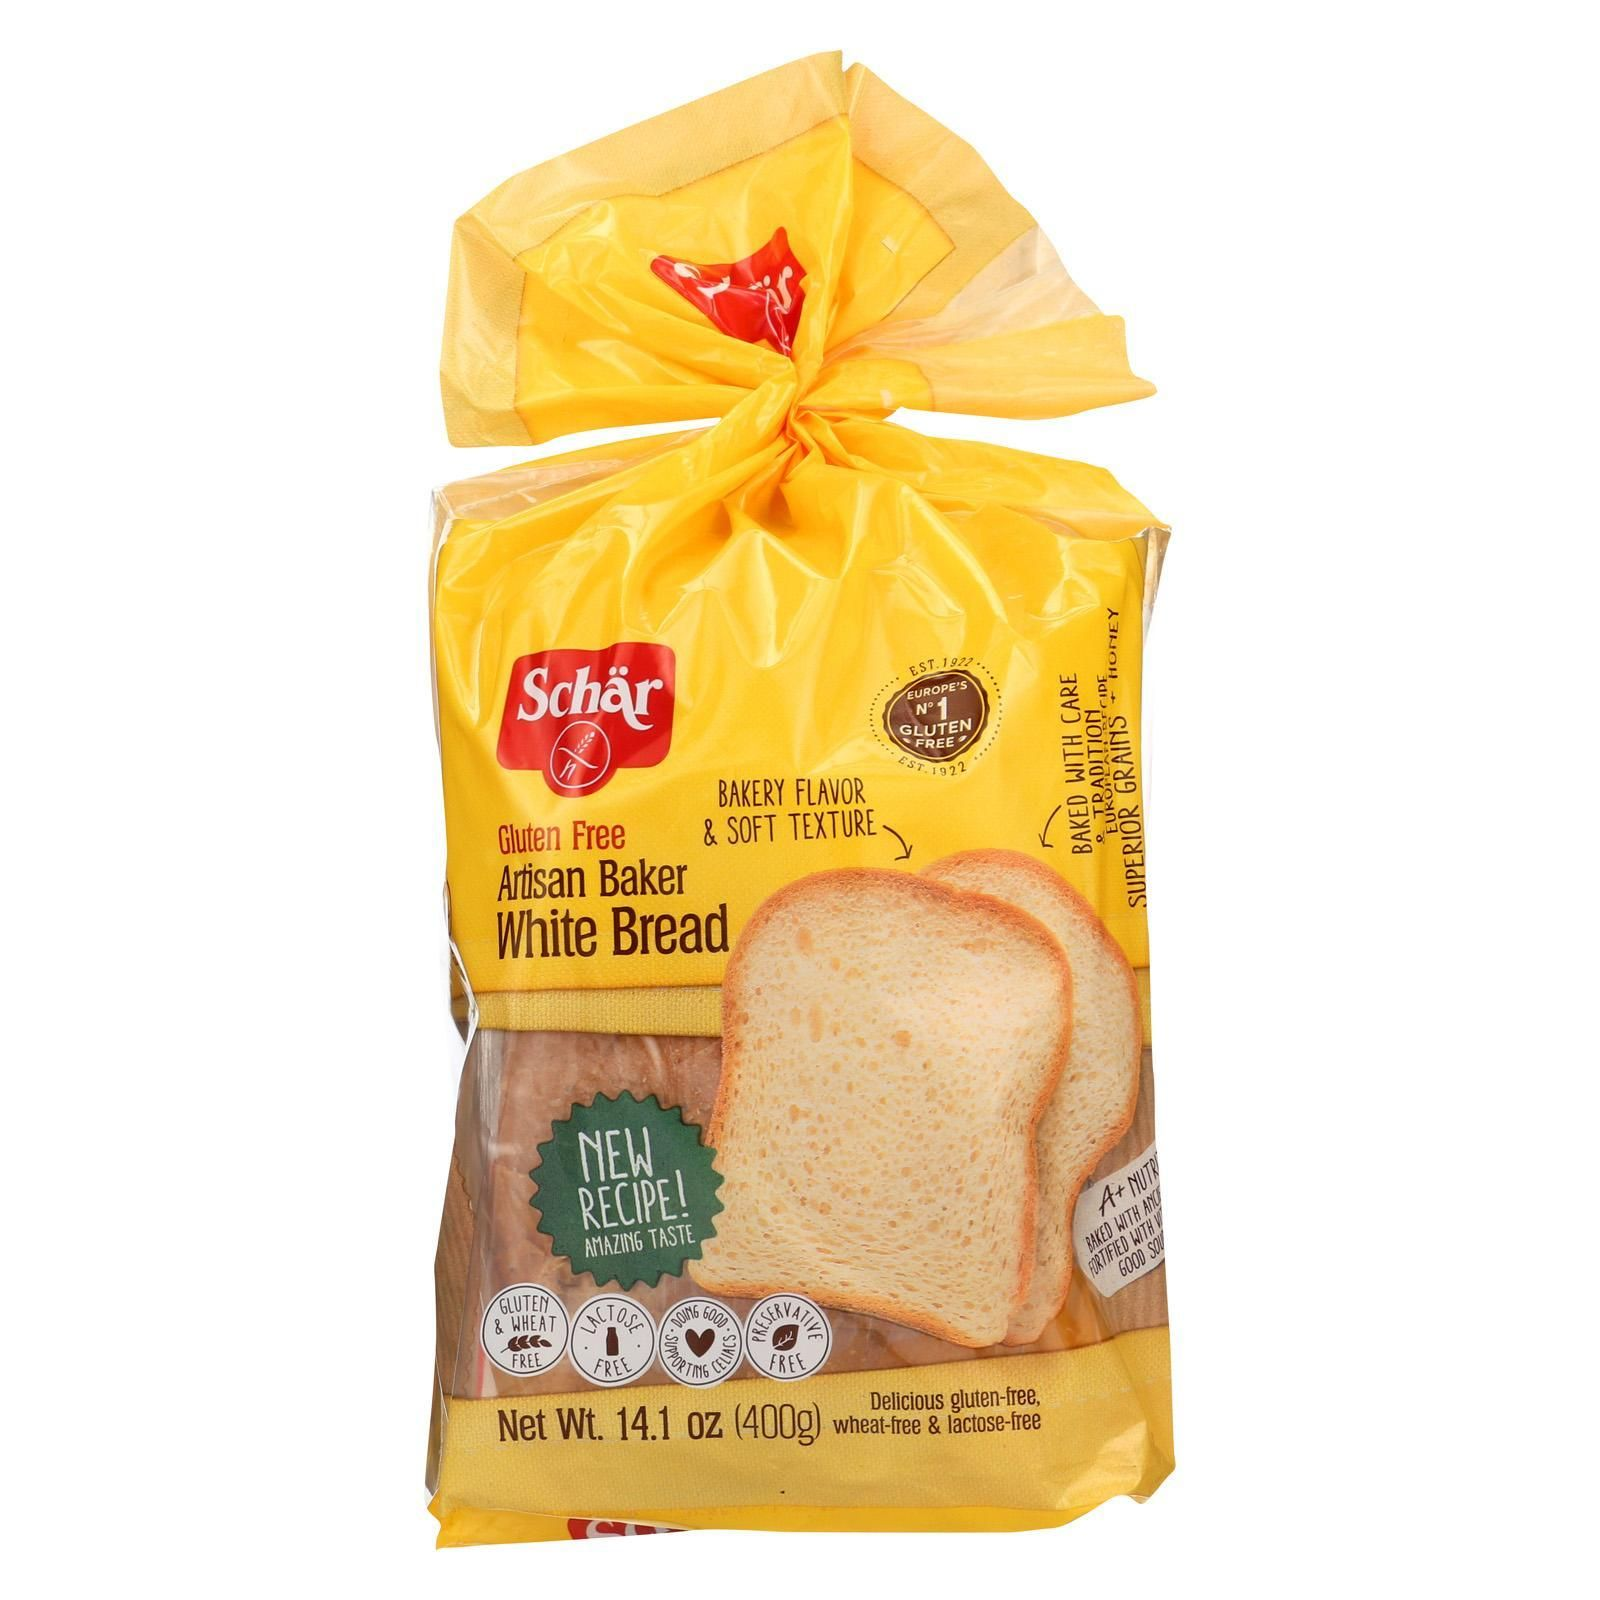 Schar Artisan Baker Bread White Case Of 6 14 1 Oz Bread